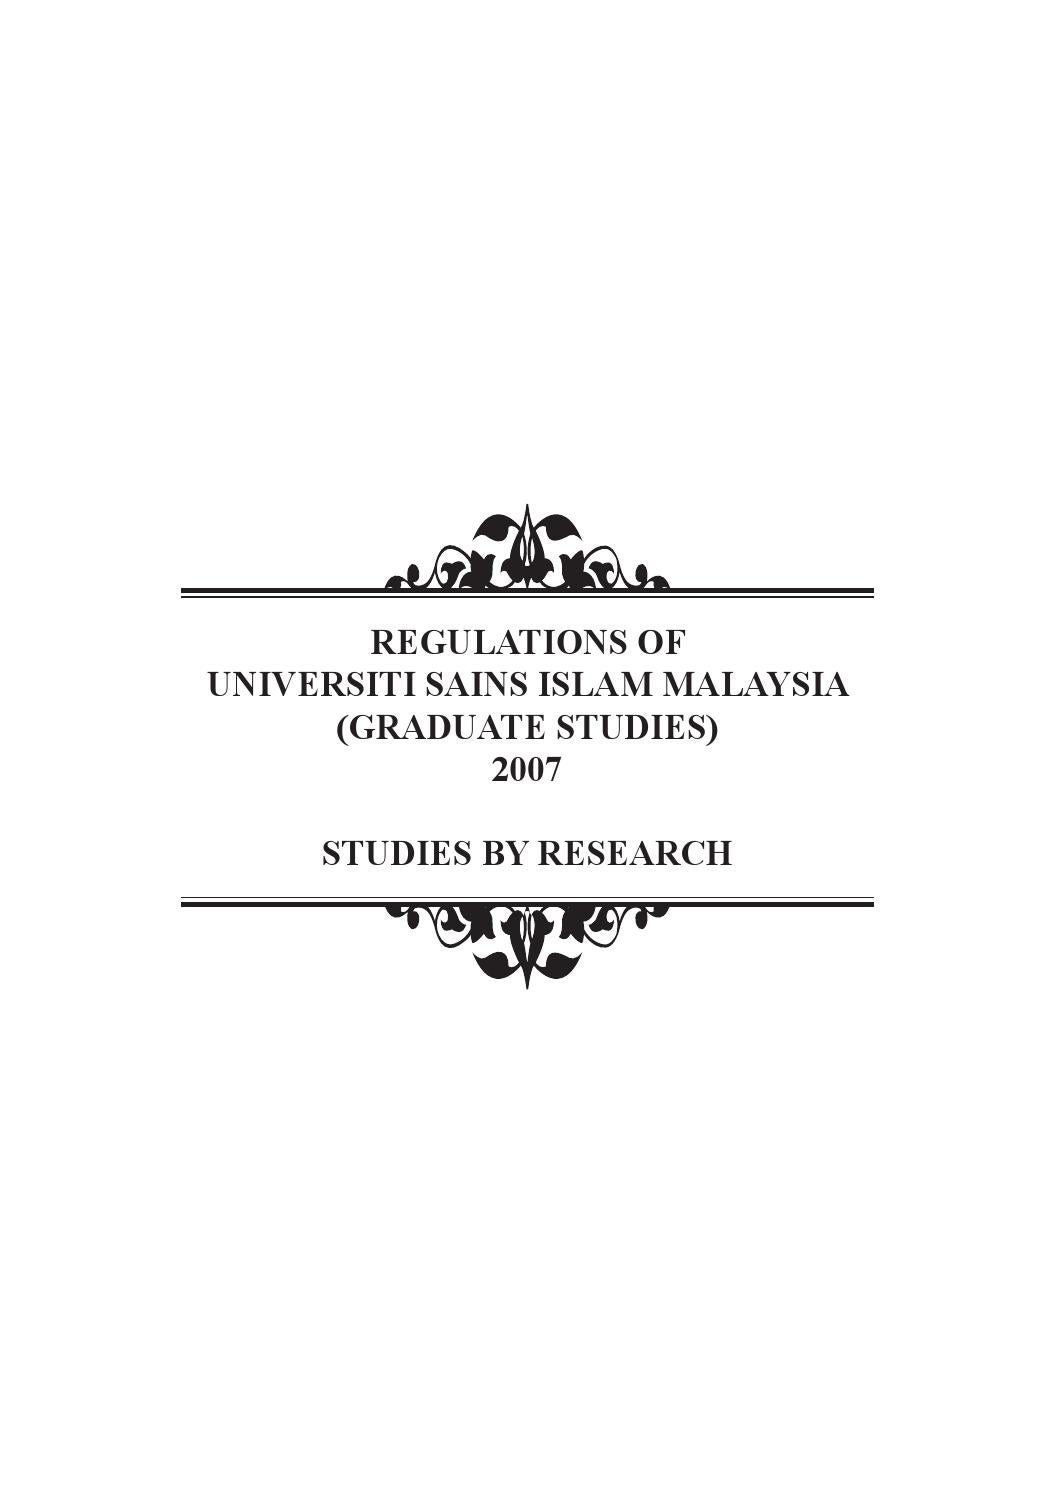 Regulations Of Usim Studies By Research By Goal Centre Issuu